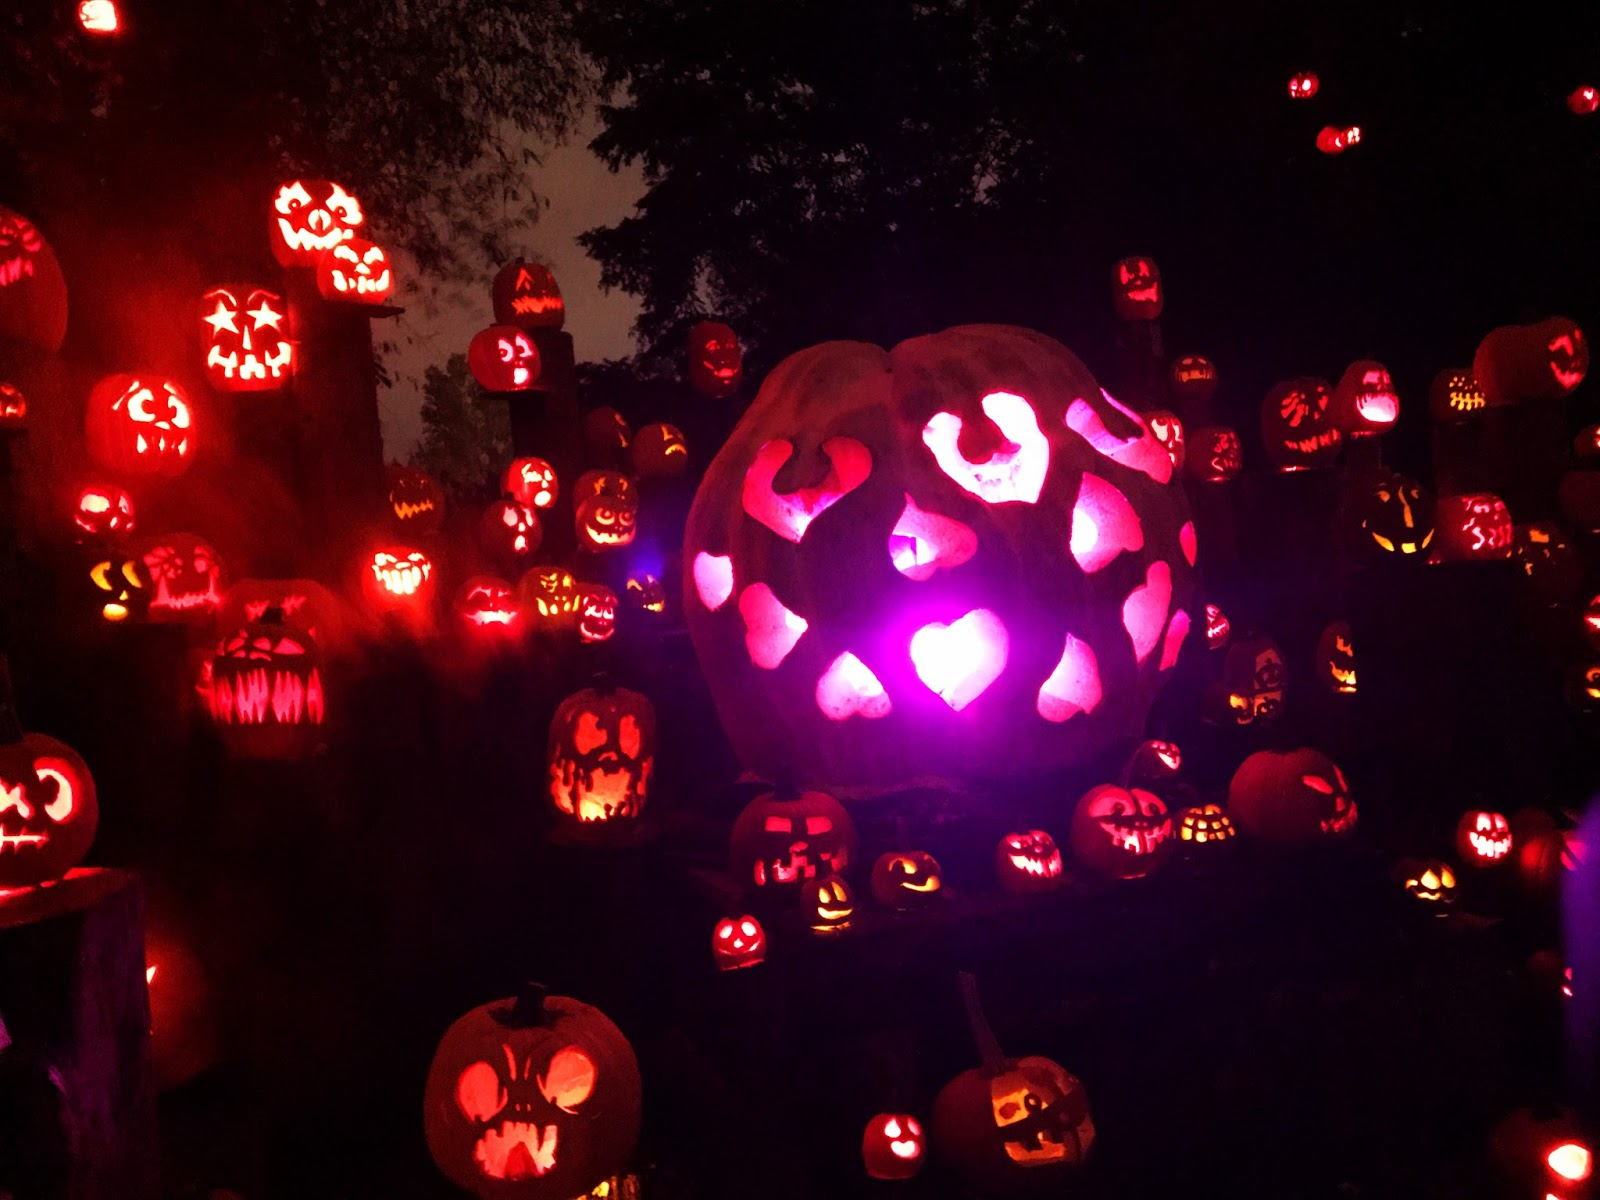 evan and lauren's cool blog: roger williams park zoo jack-o-lantern